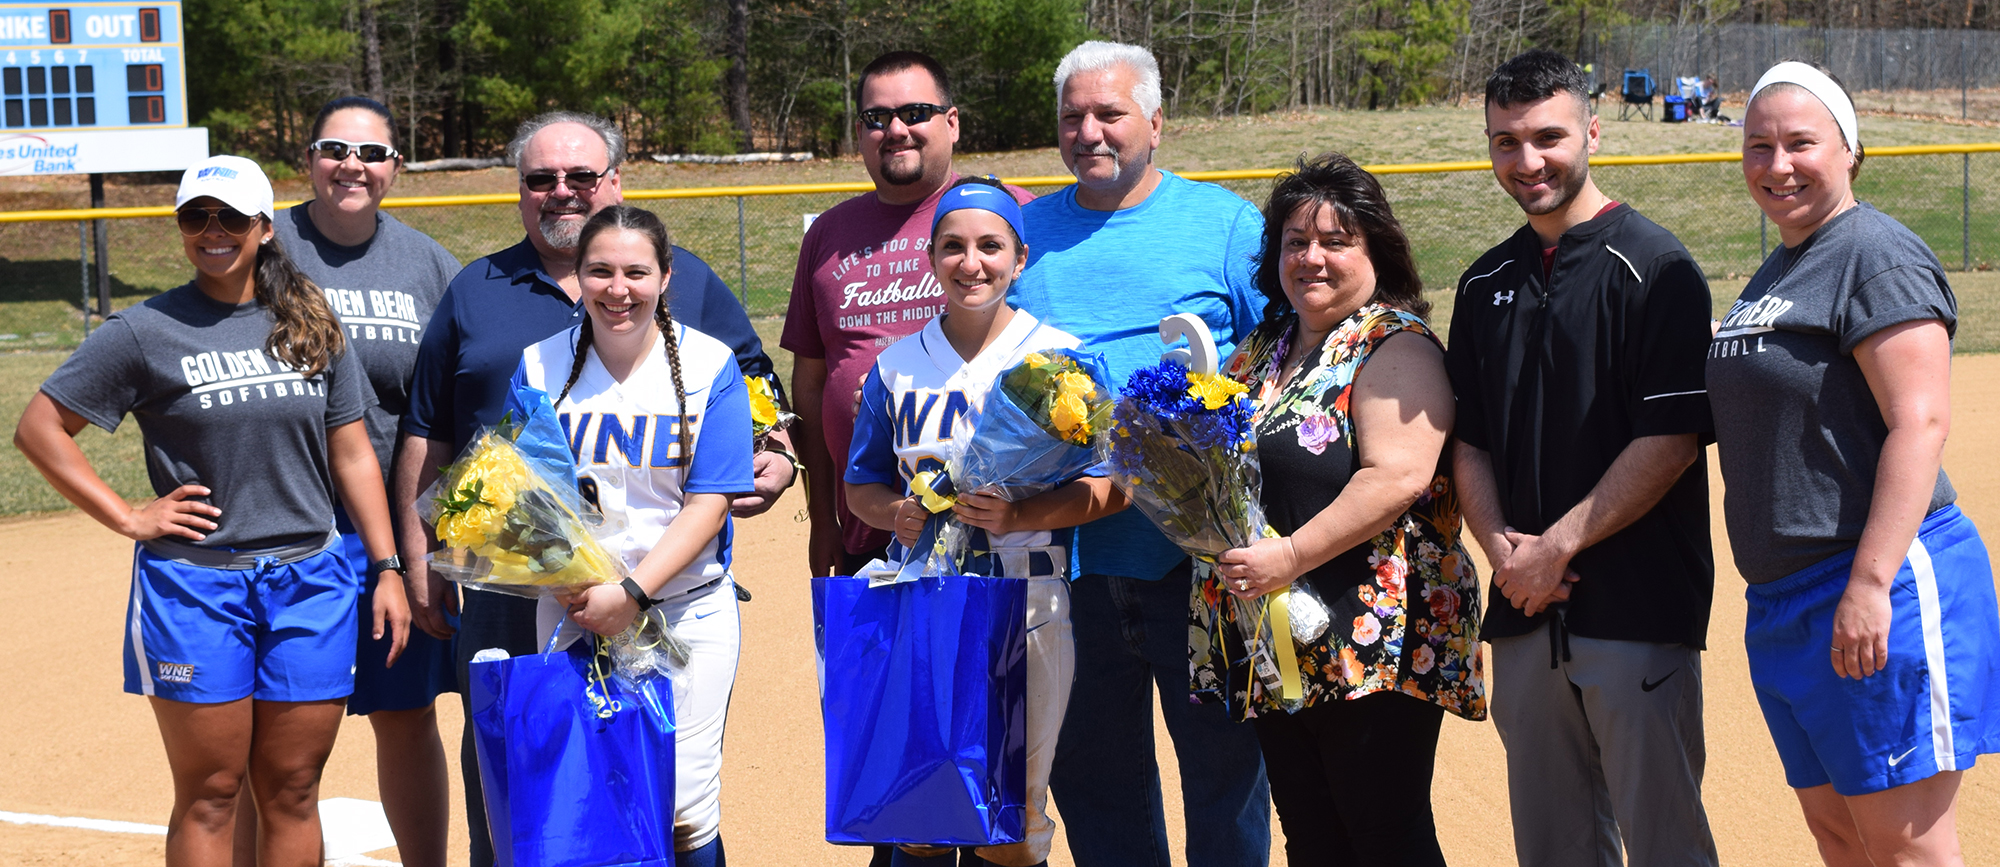 Western New England honored seniors Ashley Rivest and Giovanna Russo before the start of Saturday's doubleheader against Salve Regina. (Photo by Rachael Margossian)